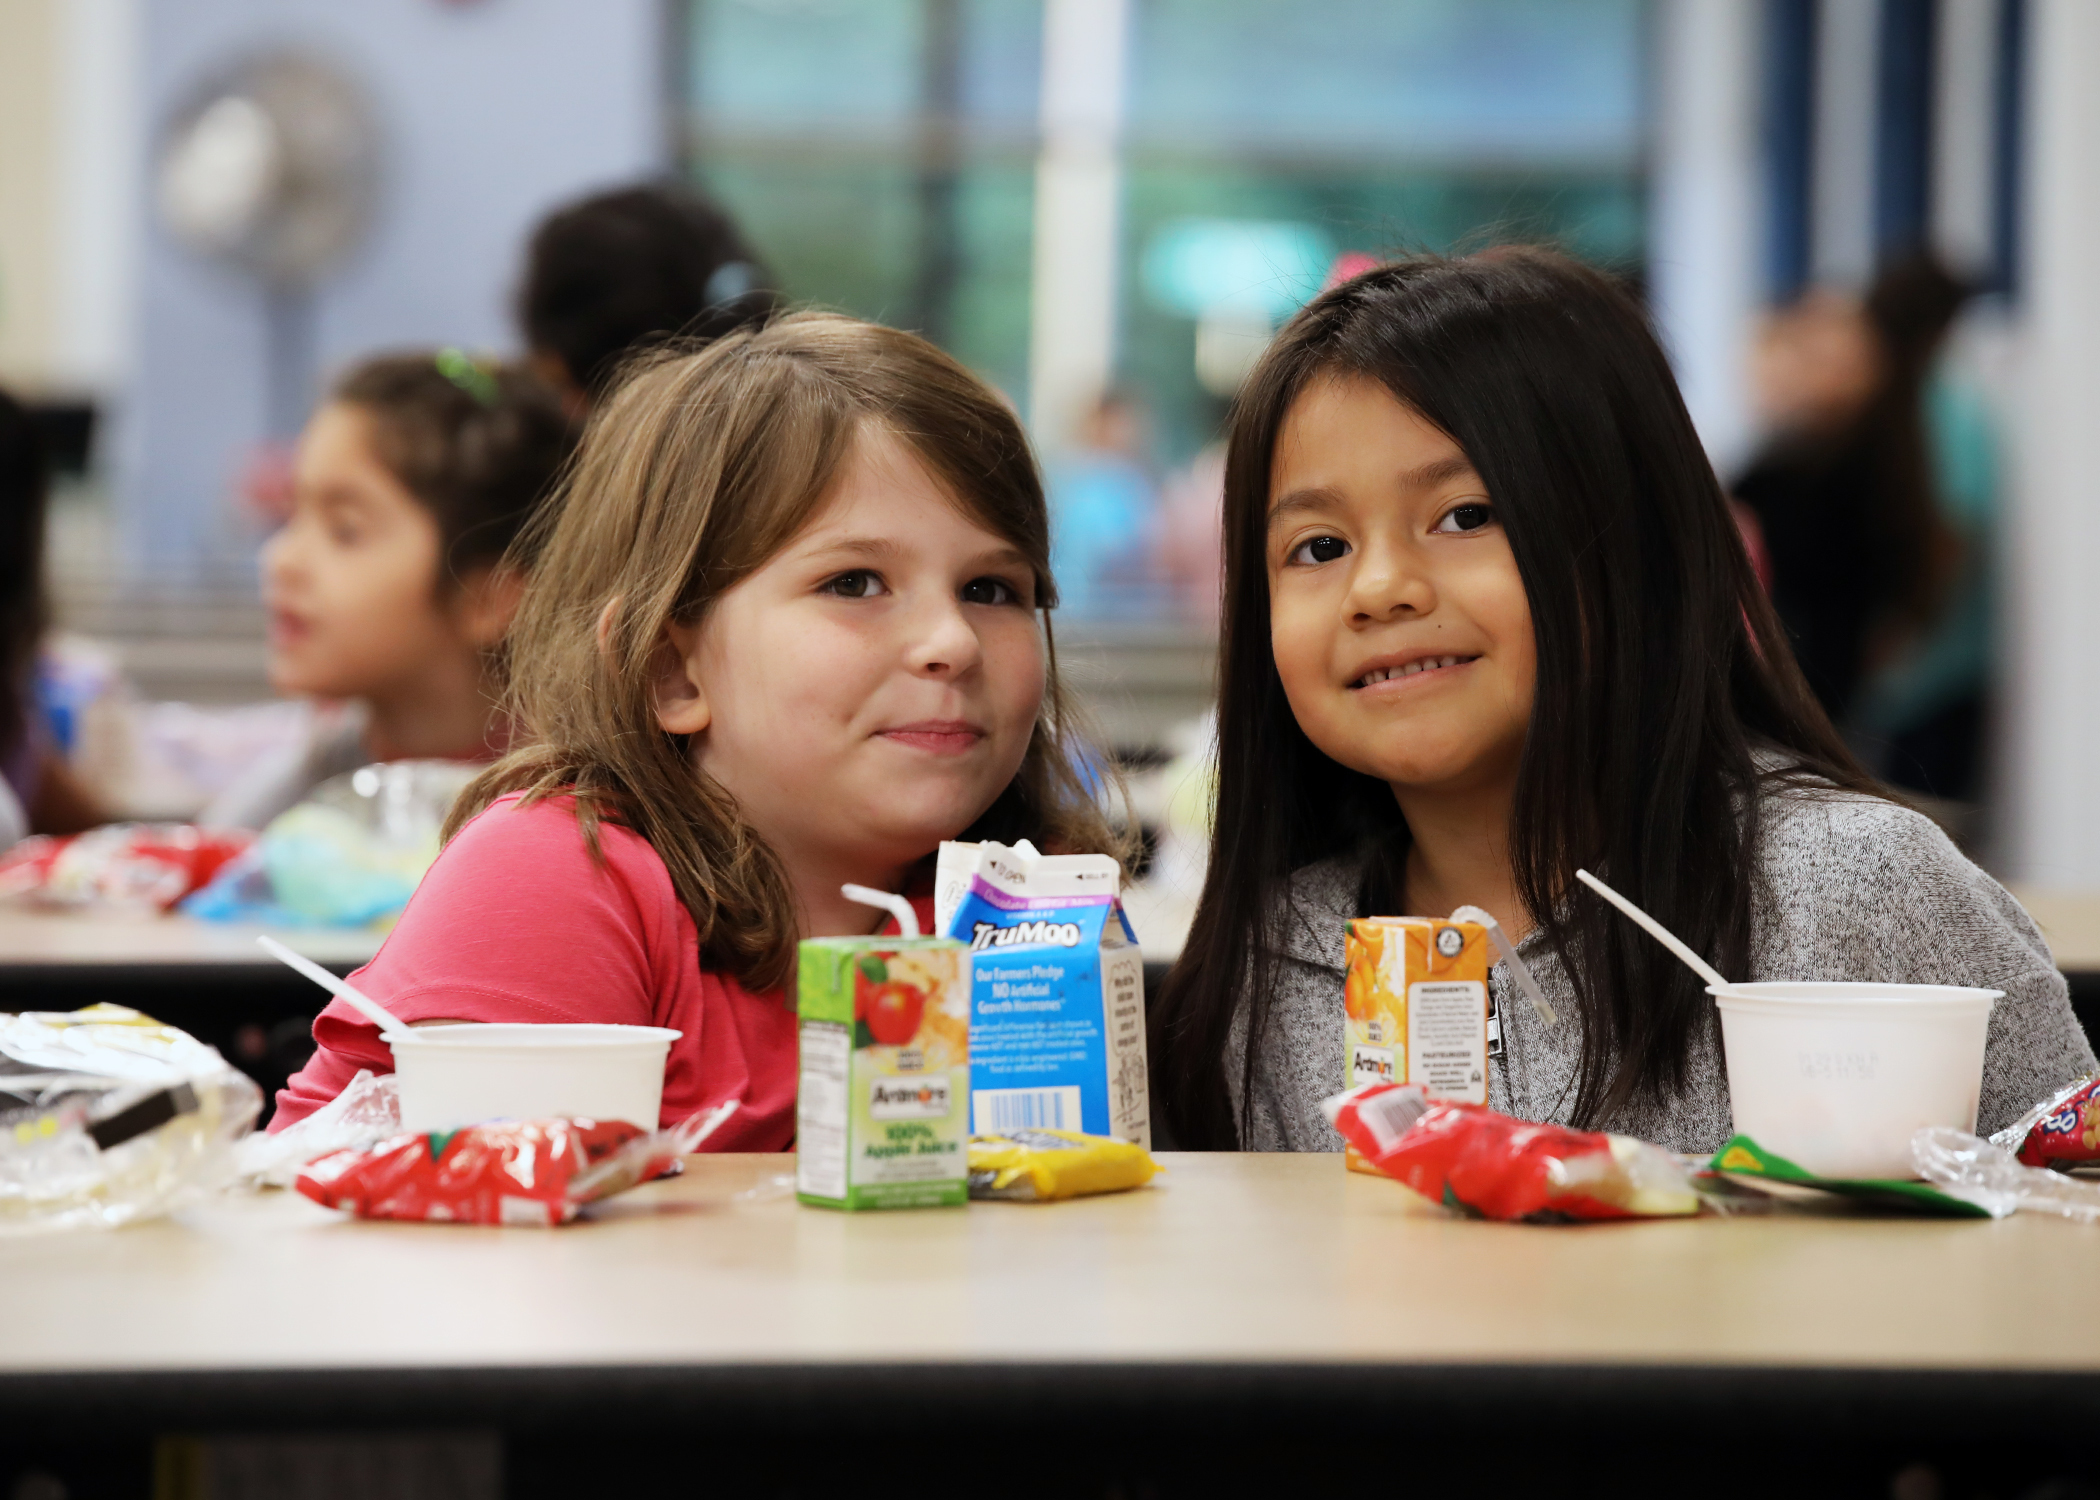 Two children pose for a picture in the cafeteria